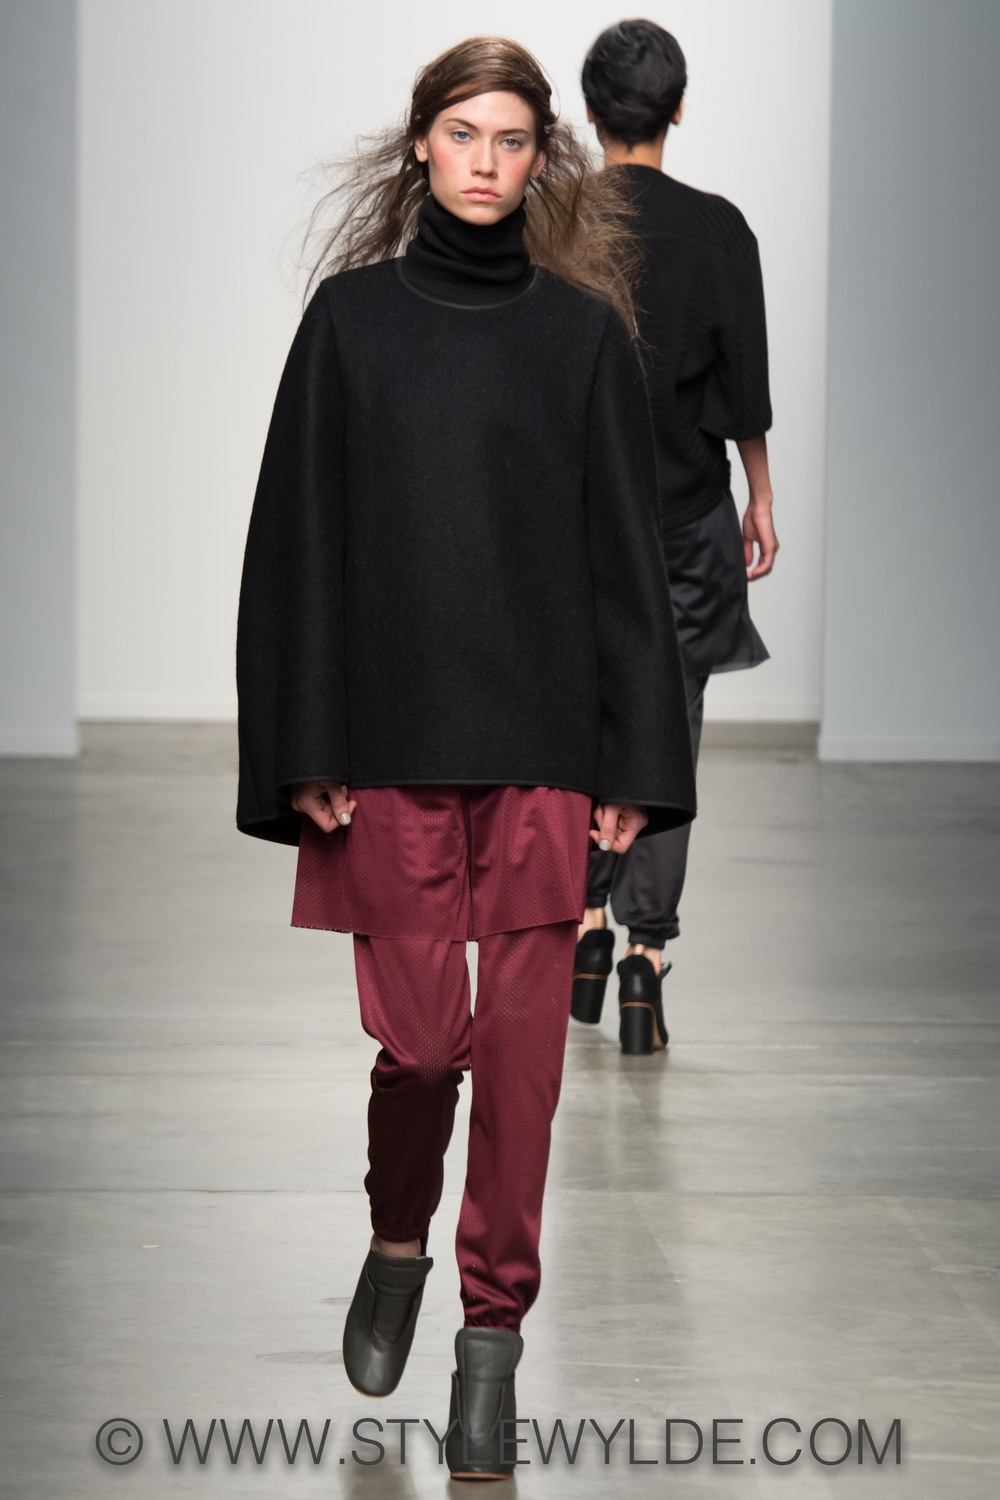 Stylewylde_adetacher_AW14_Gallery (4 of 24).jpg